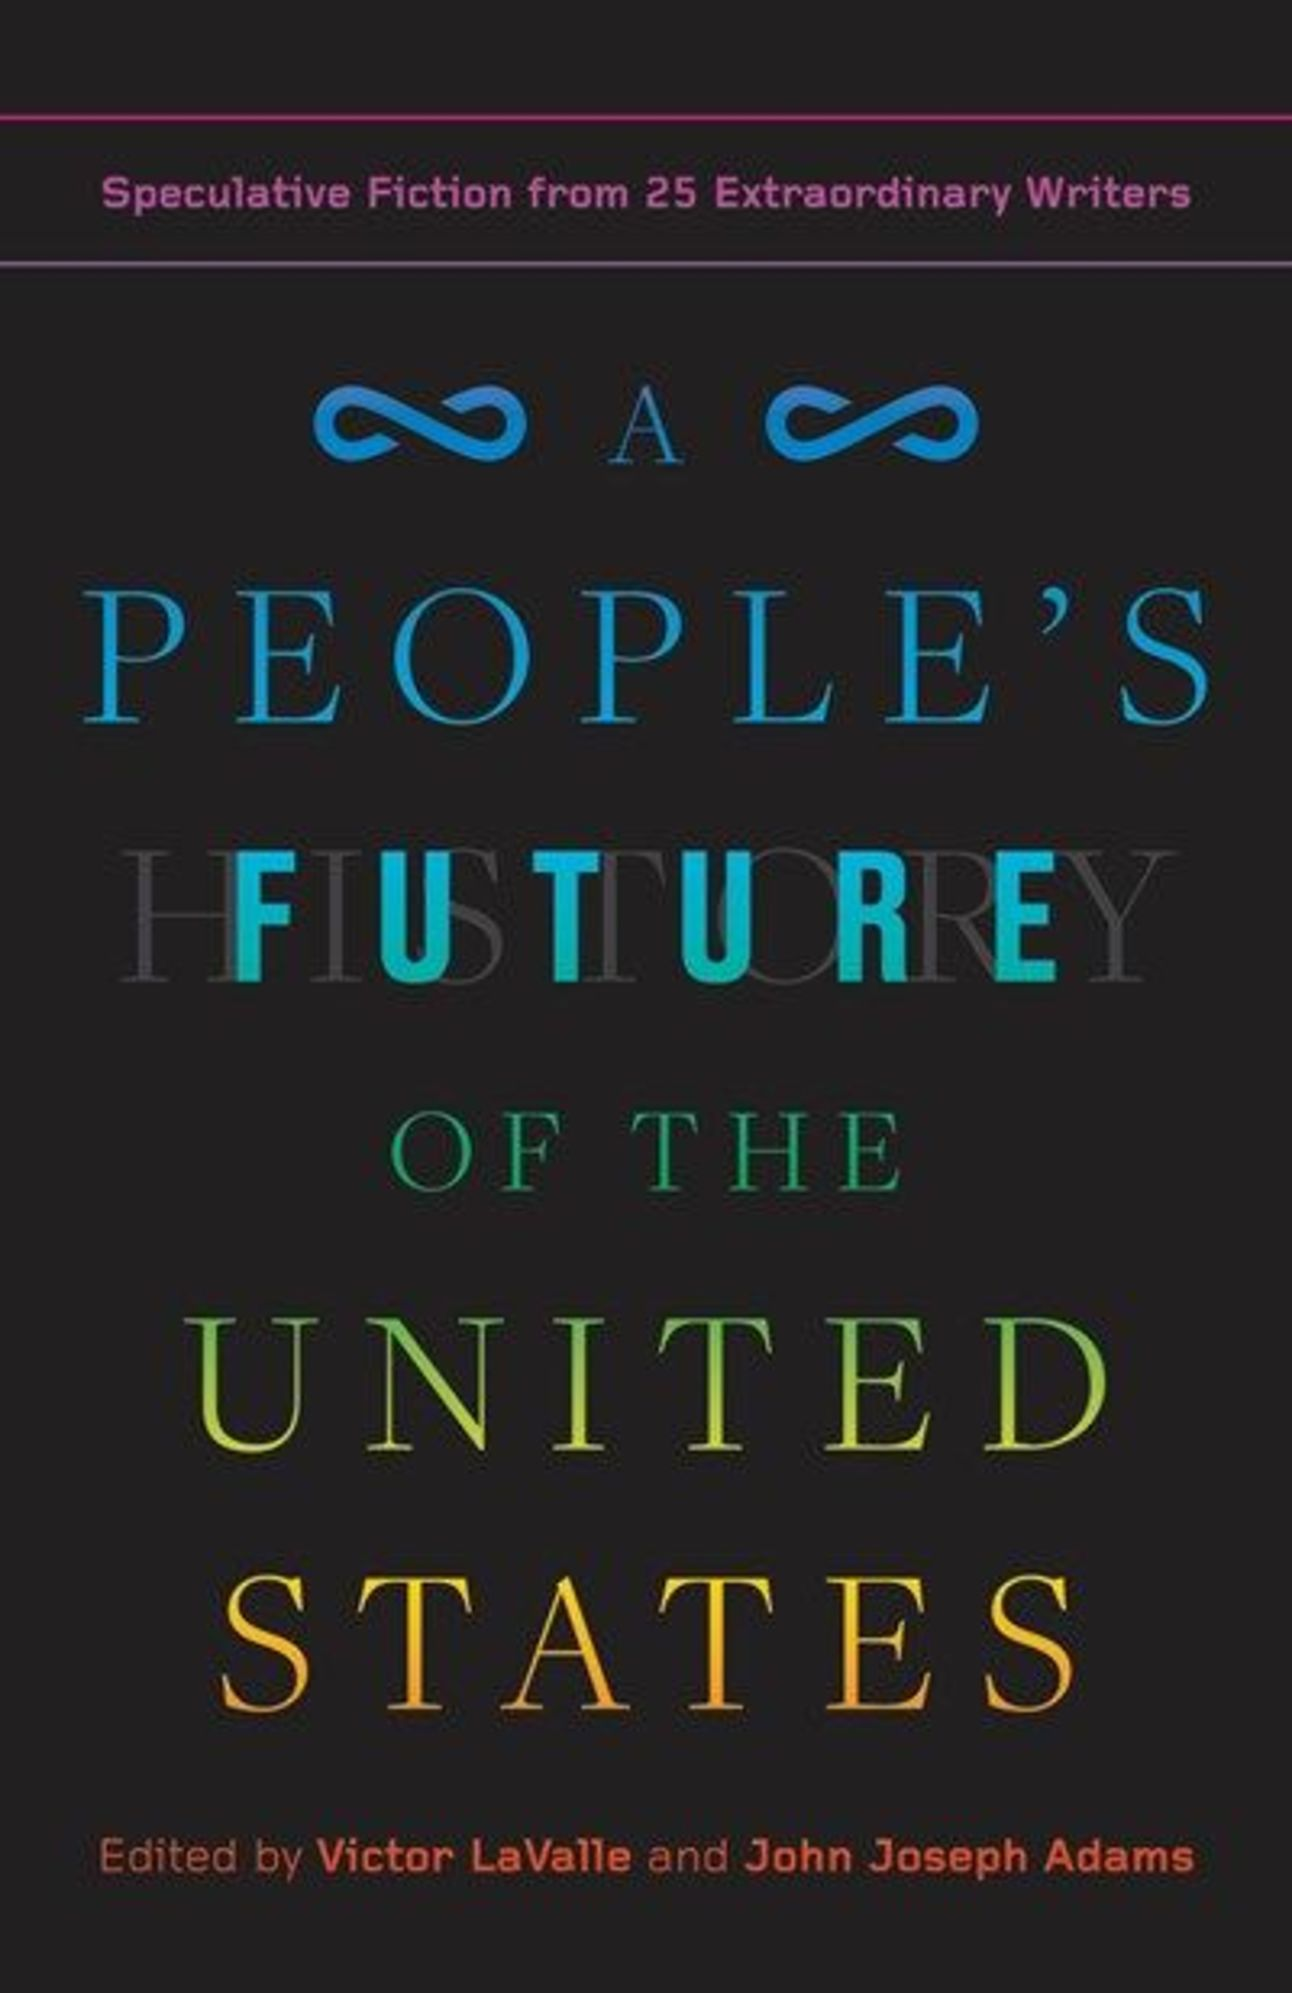 peoples-future-victor-lavalle